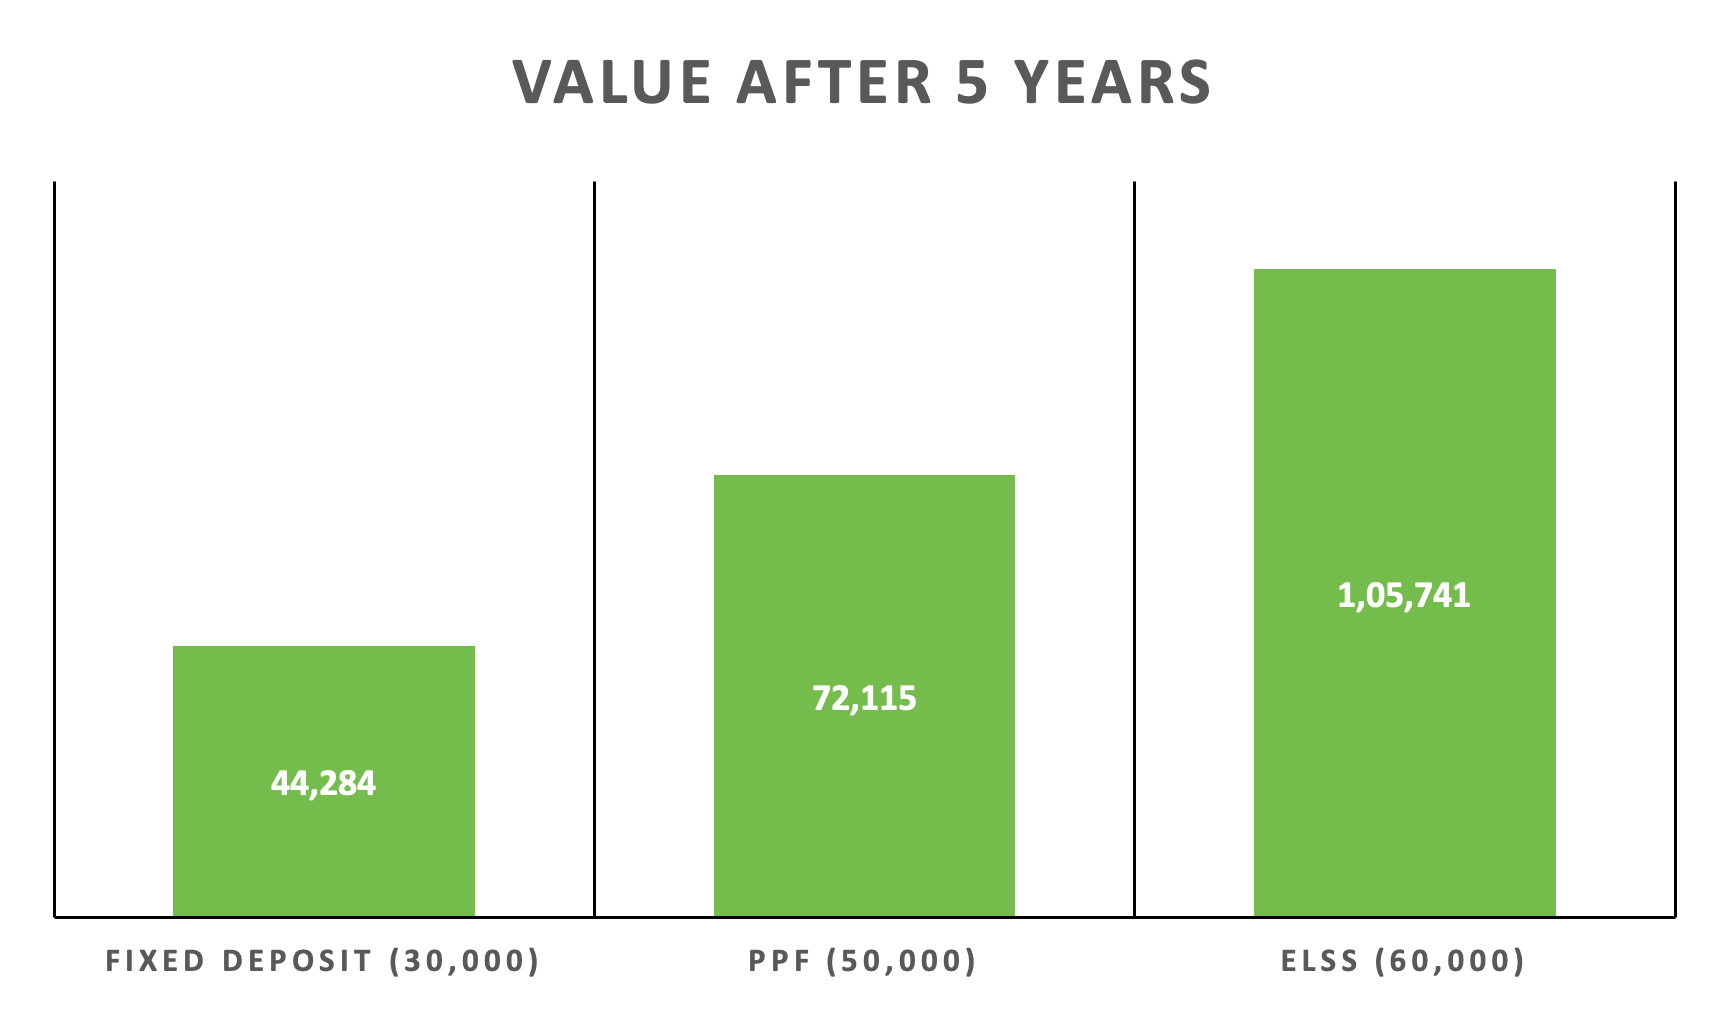 Value after 5 year